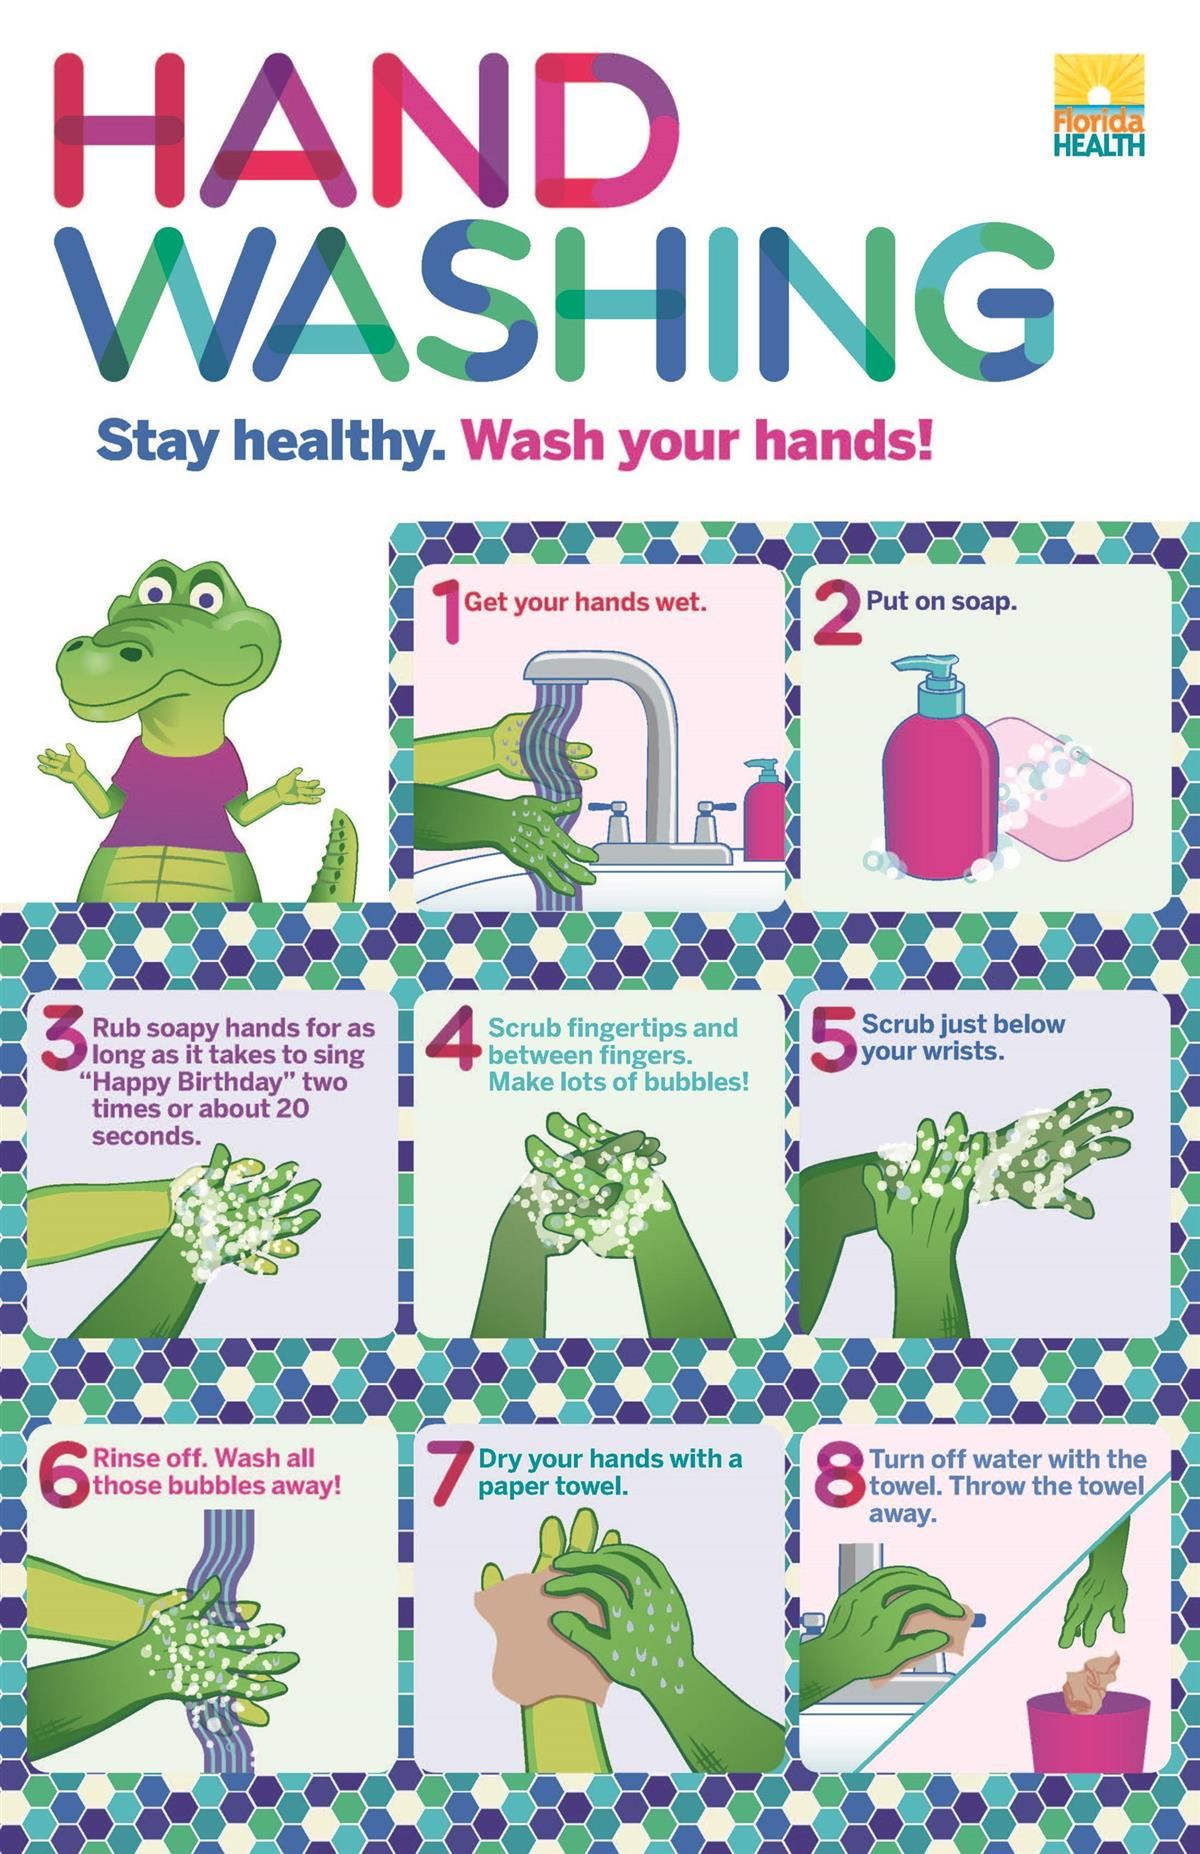 Learn more about hand washing